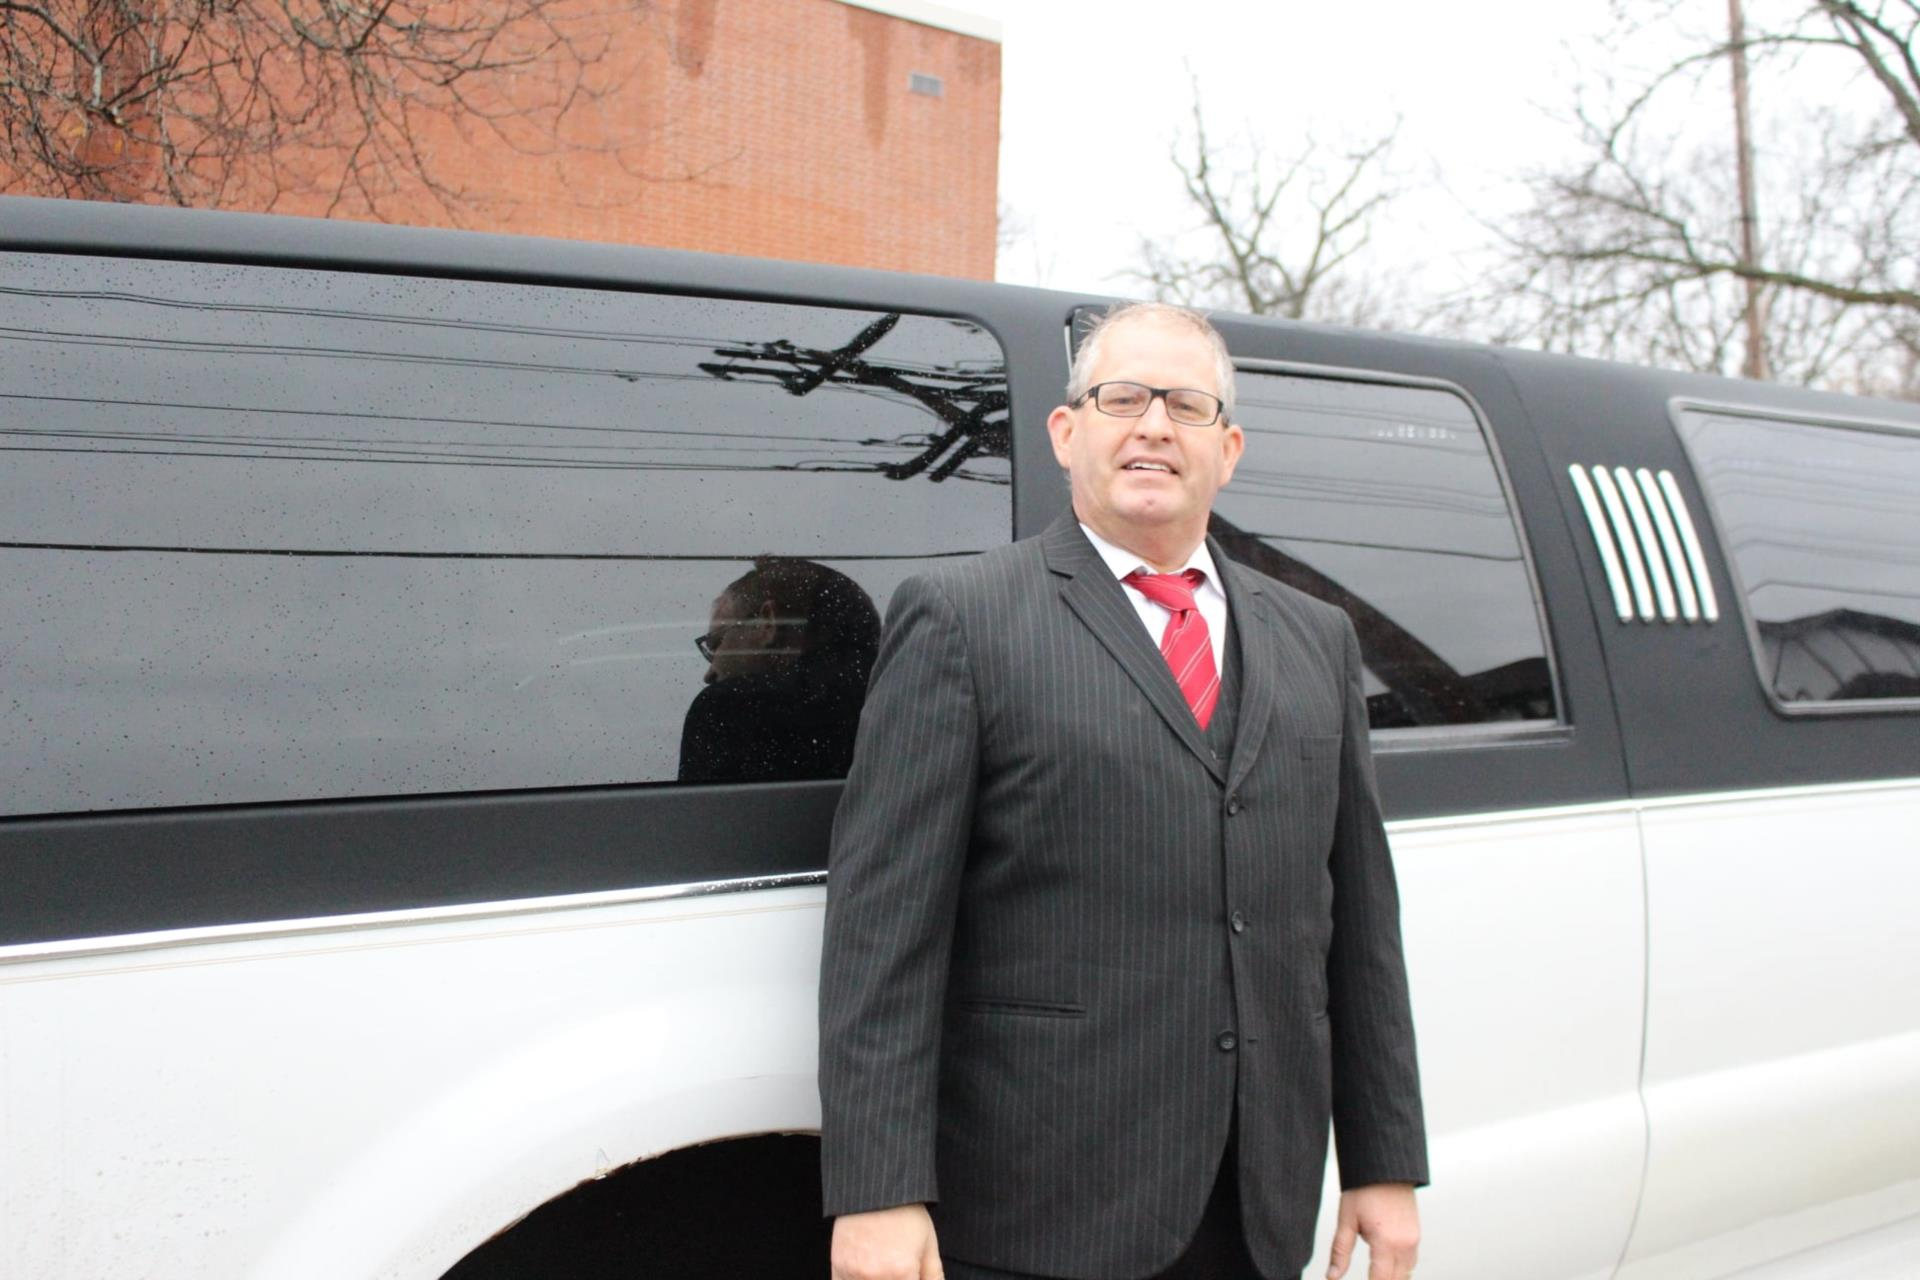 Jeff's Razorback Transit Inc. for providing a very special limo ride for our students to City Hall